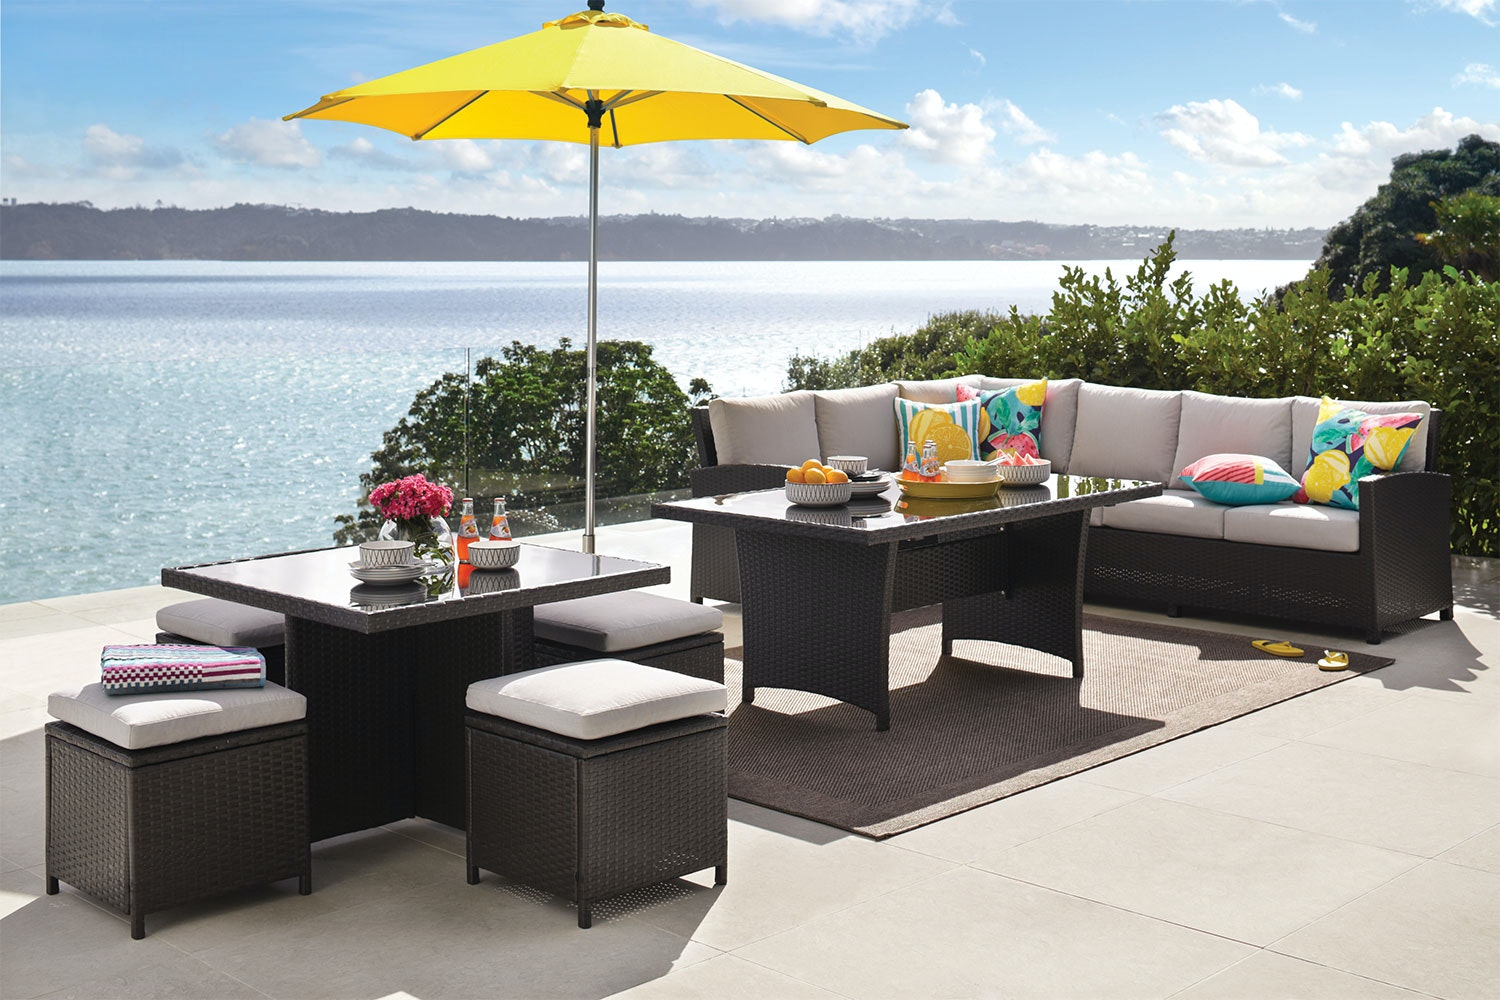 Outdoor Lounge Furniture outdoor lounge settings | harvey norman new zealand